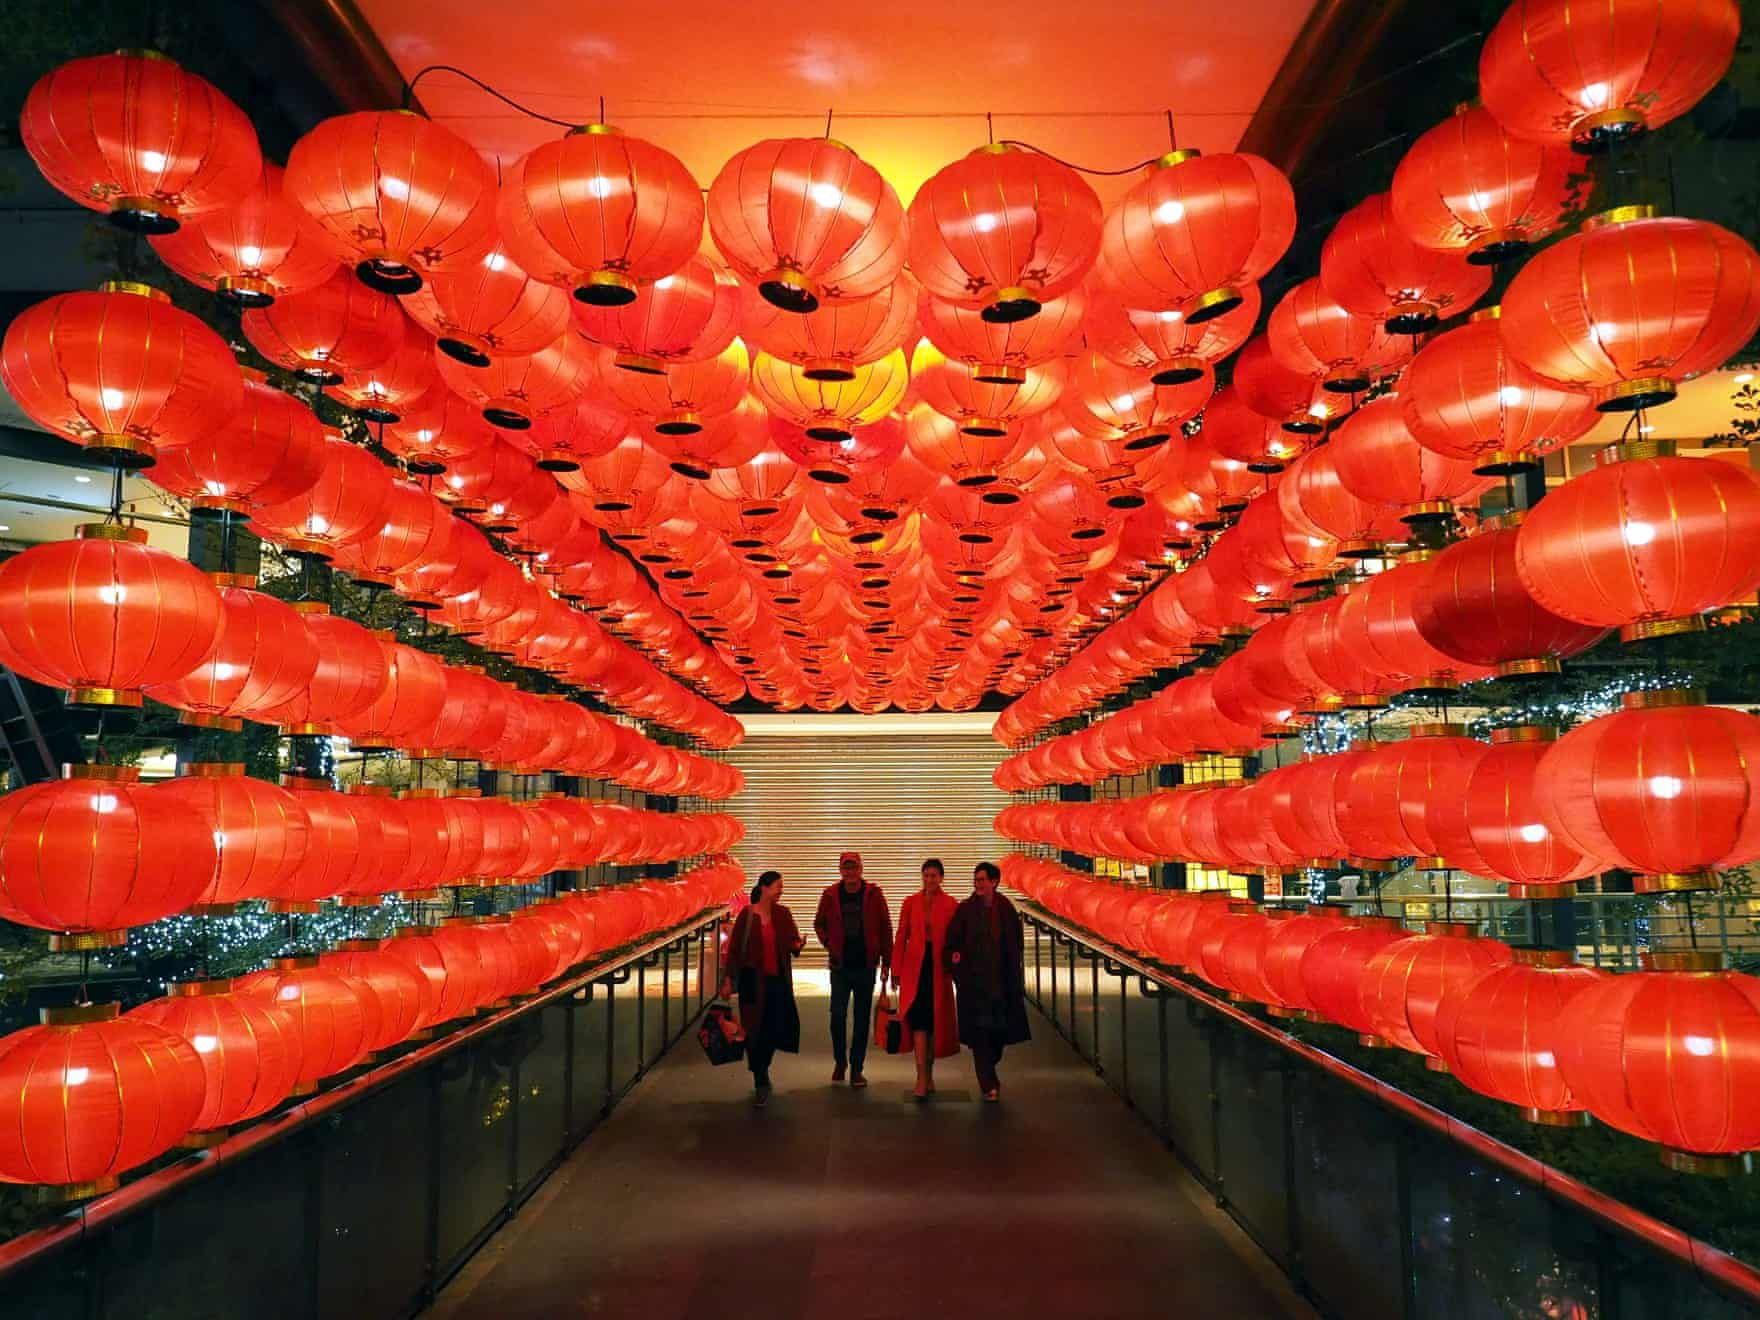 Chinese lunar new year 2019 in pictures Red lantern